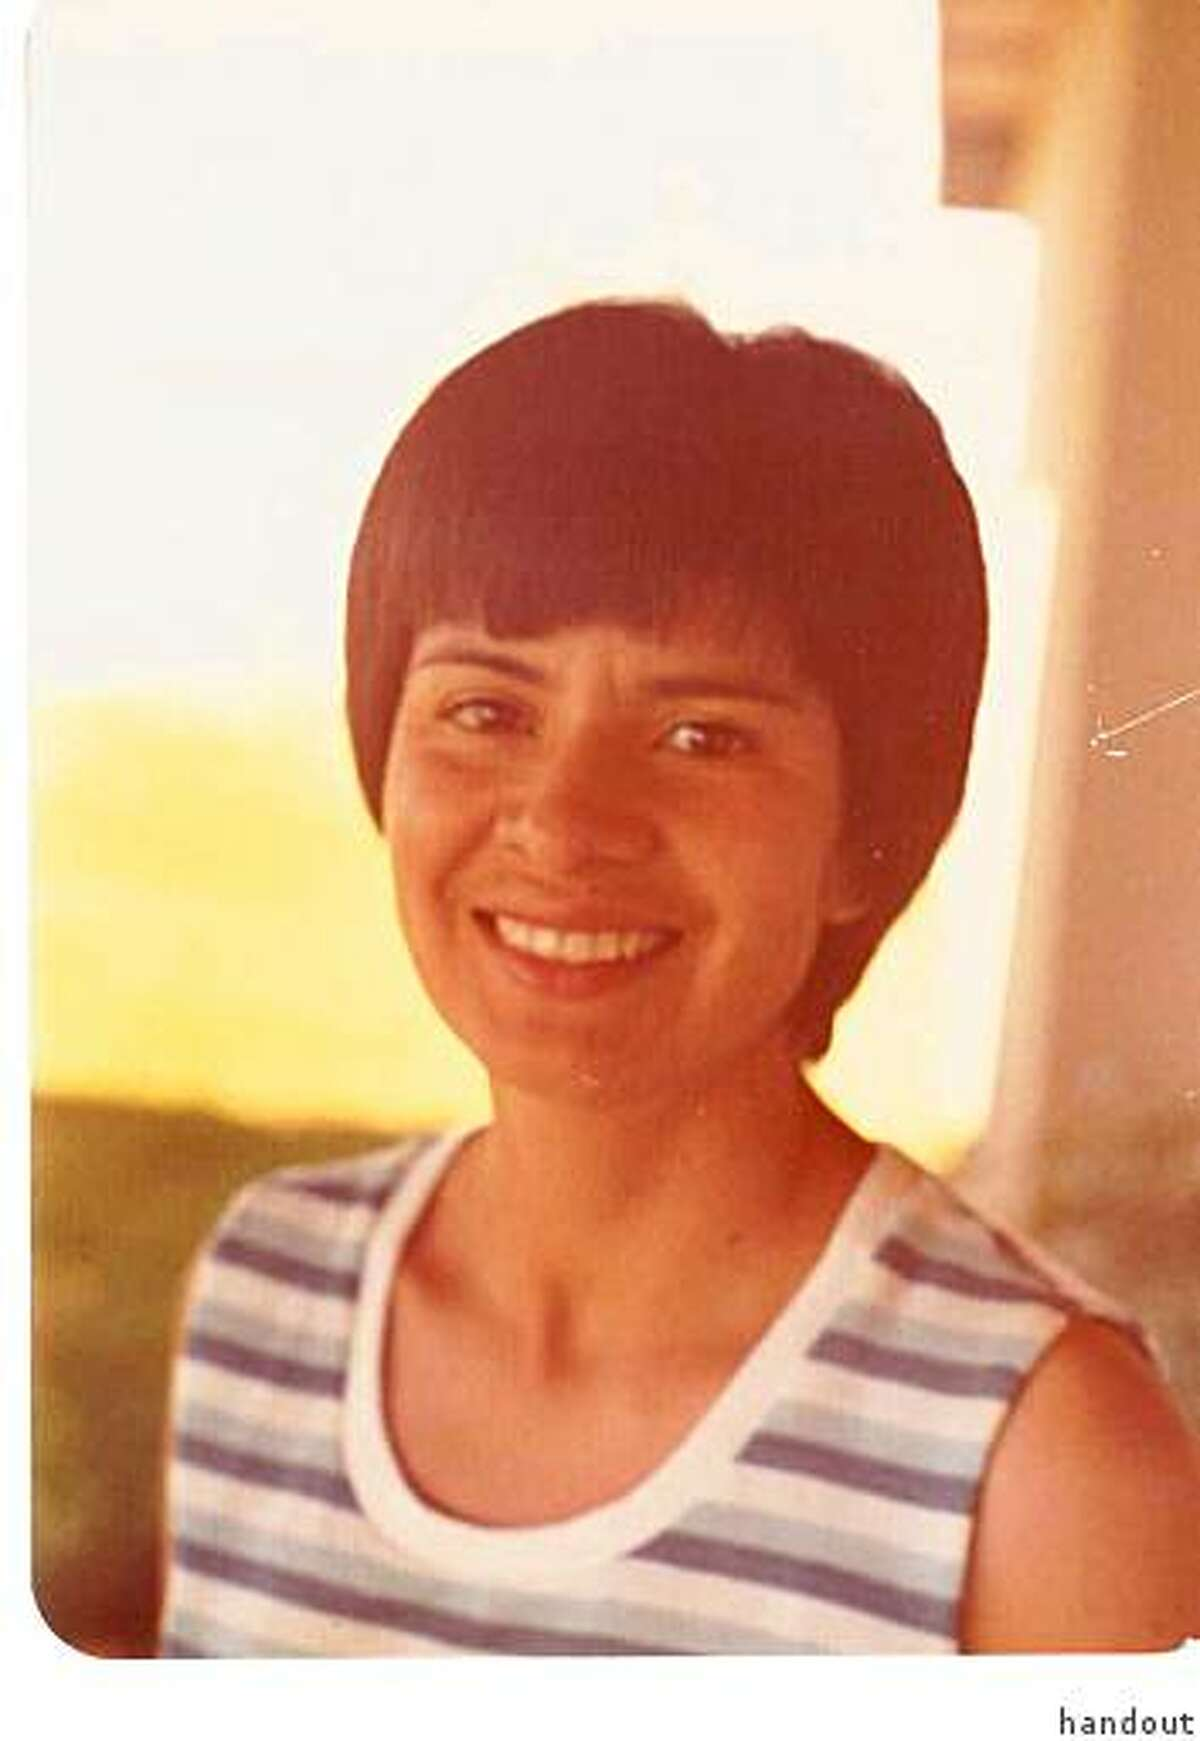 For metro ; Armida Wiltsey, 40 at the time of her death Nov. 14, 1978 ; on 10/3/03 in . / HO